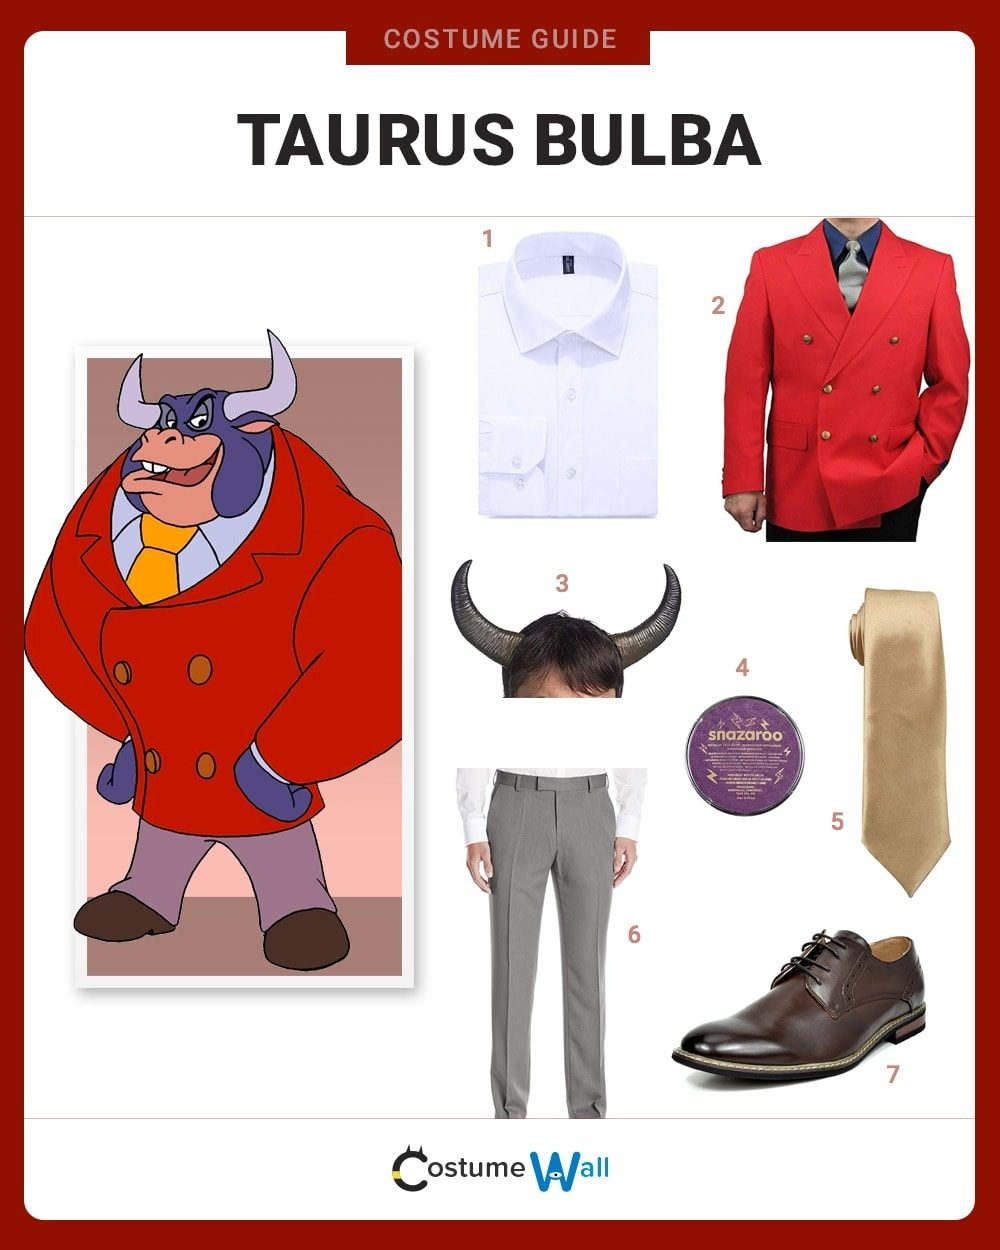 Taurus Bulba Costume Guide